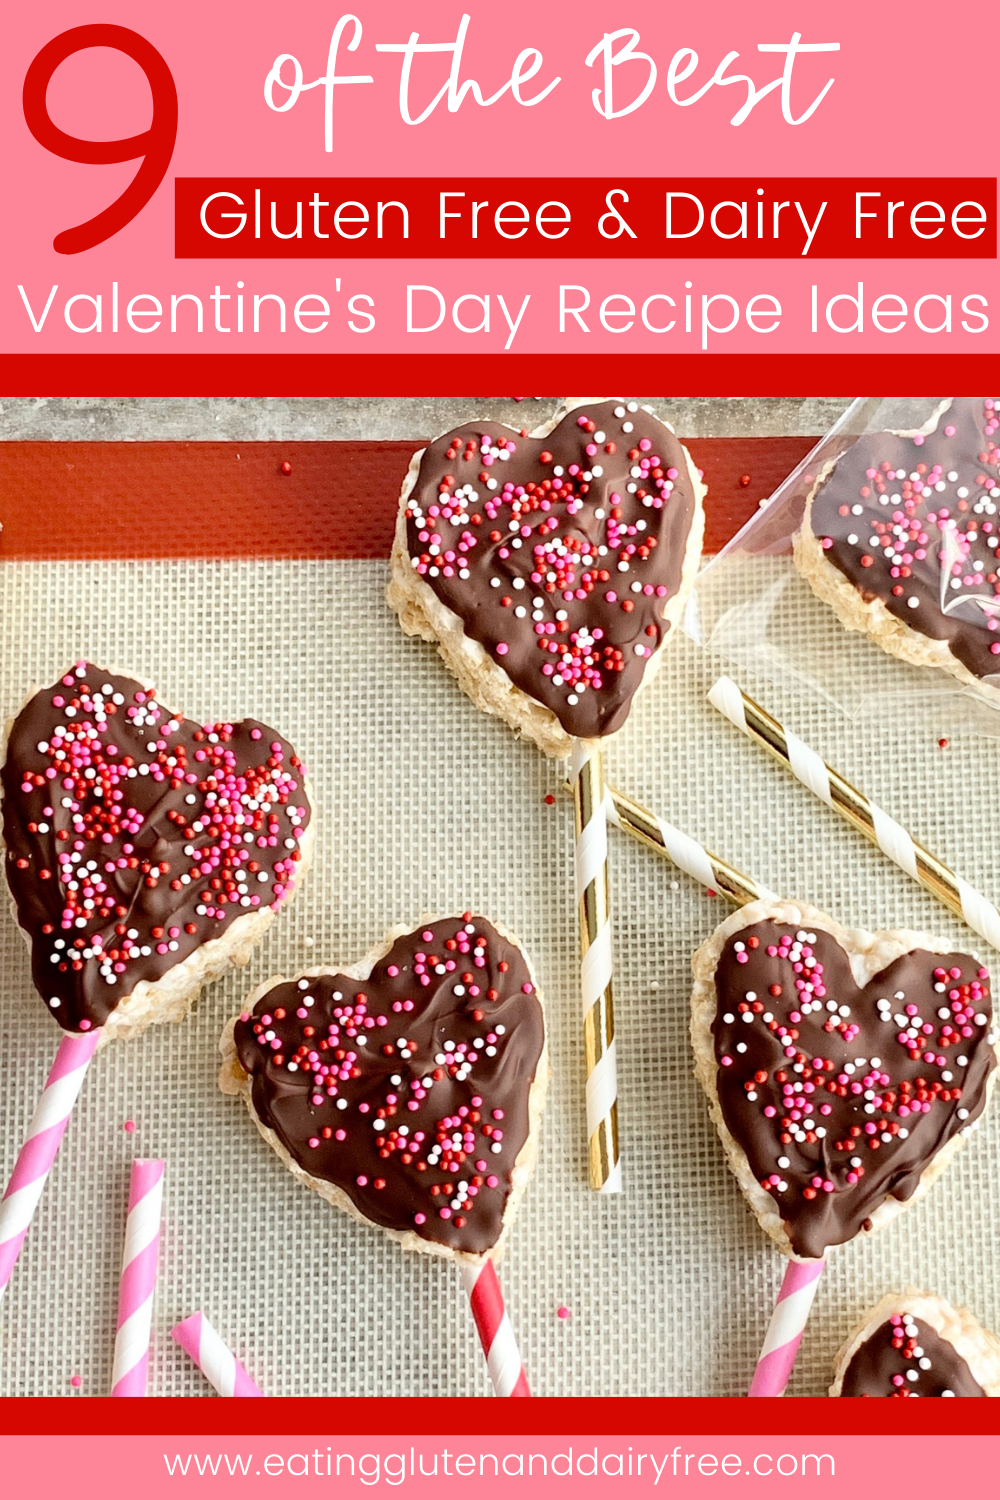 heart shaped rice krispies with melted chocolate and sprinkles on top.